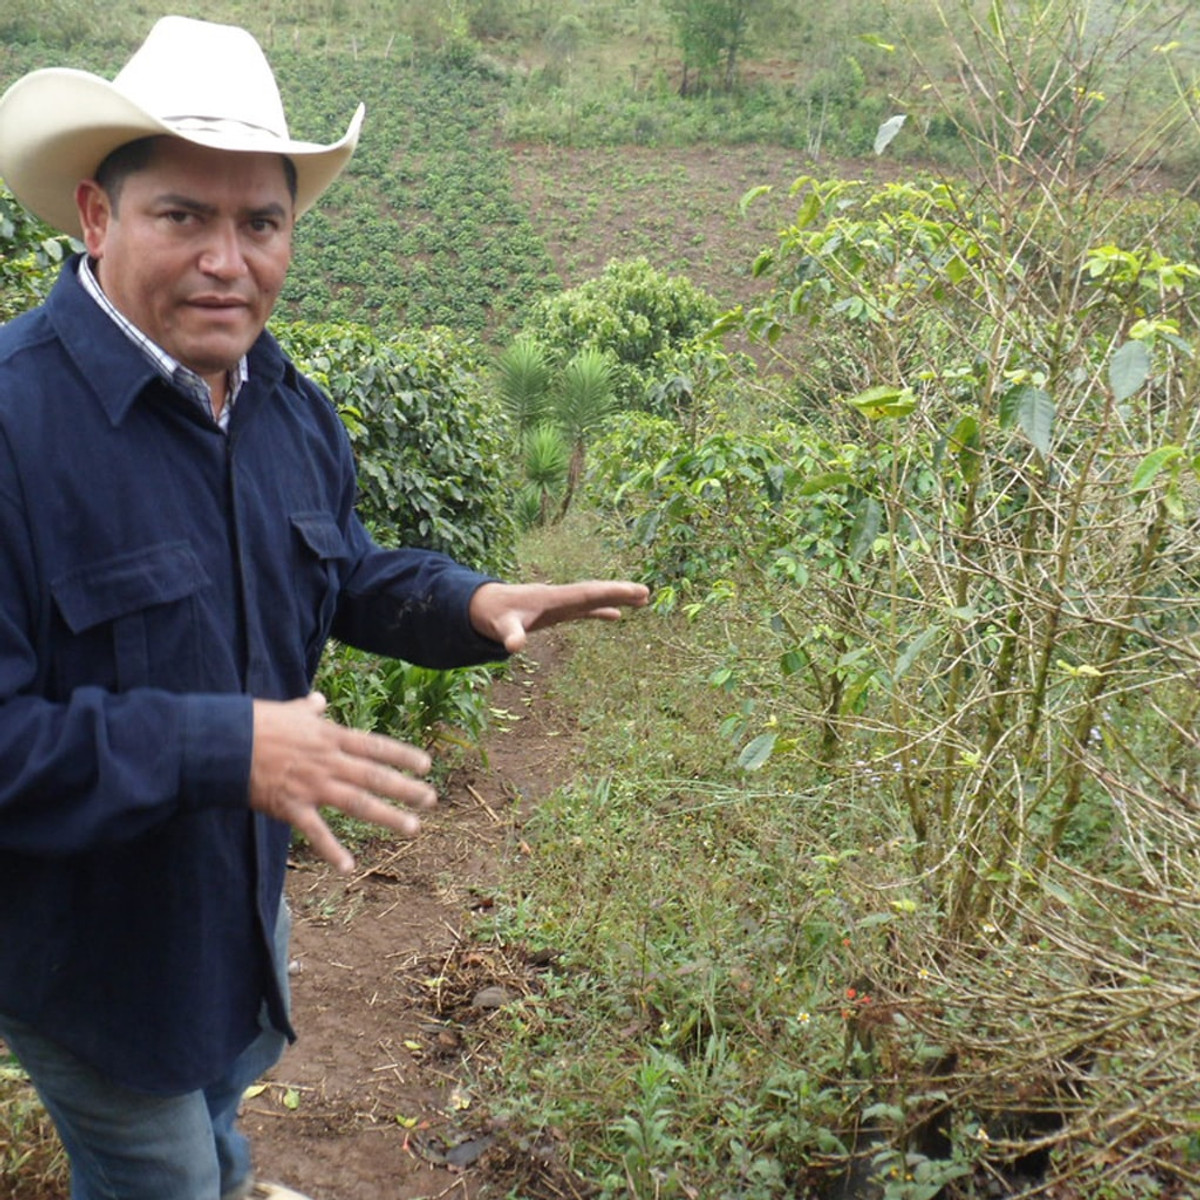 COMSA coffee farmer who is passionate about soil ecology and the microorganisms that support life